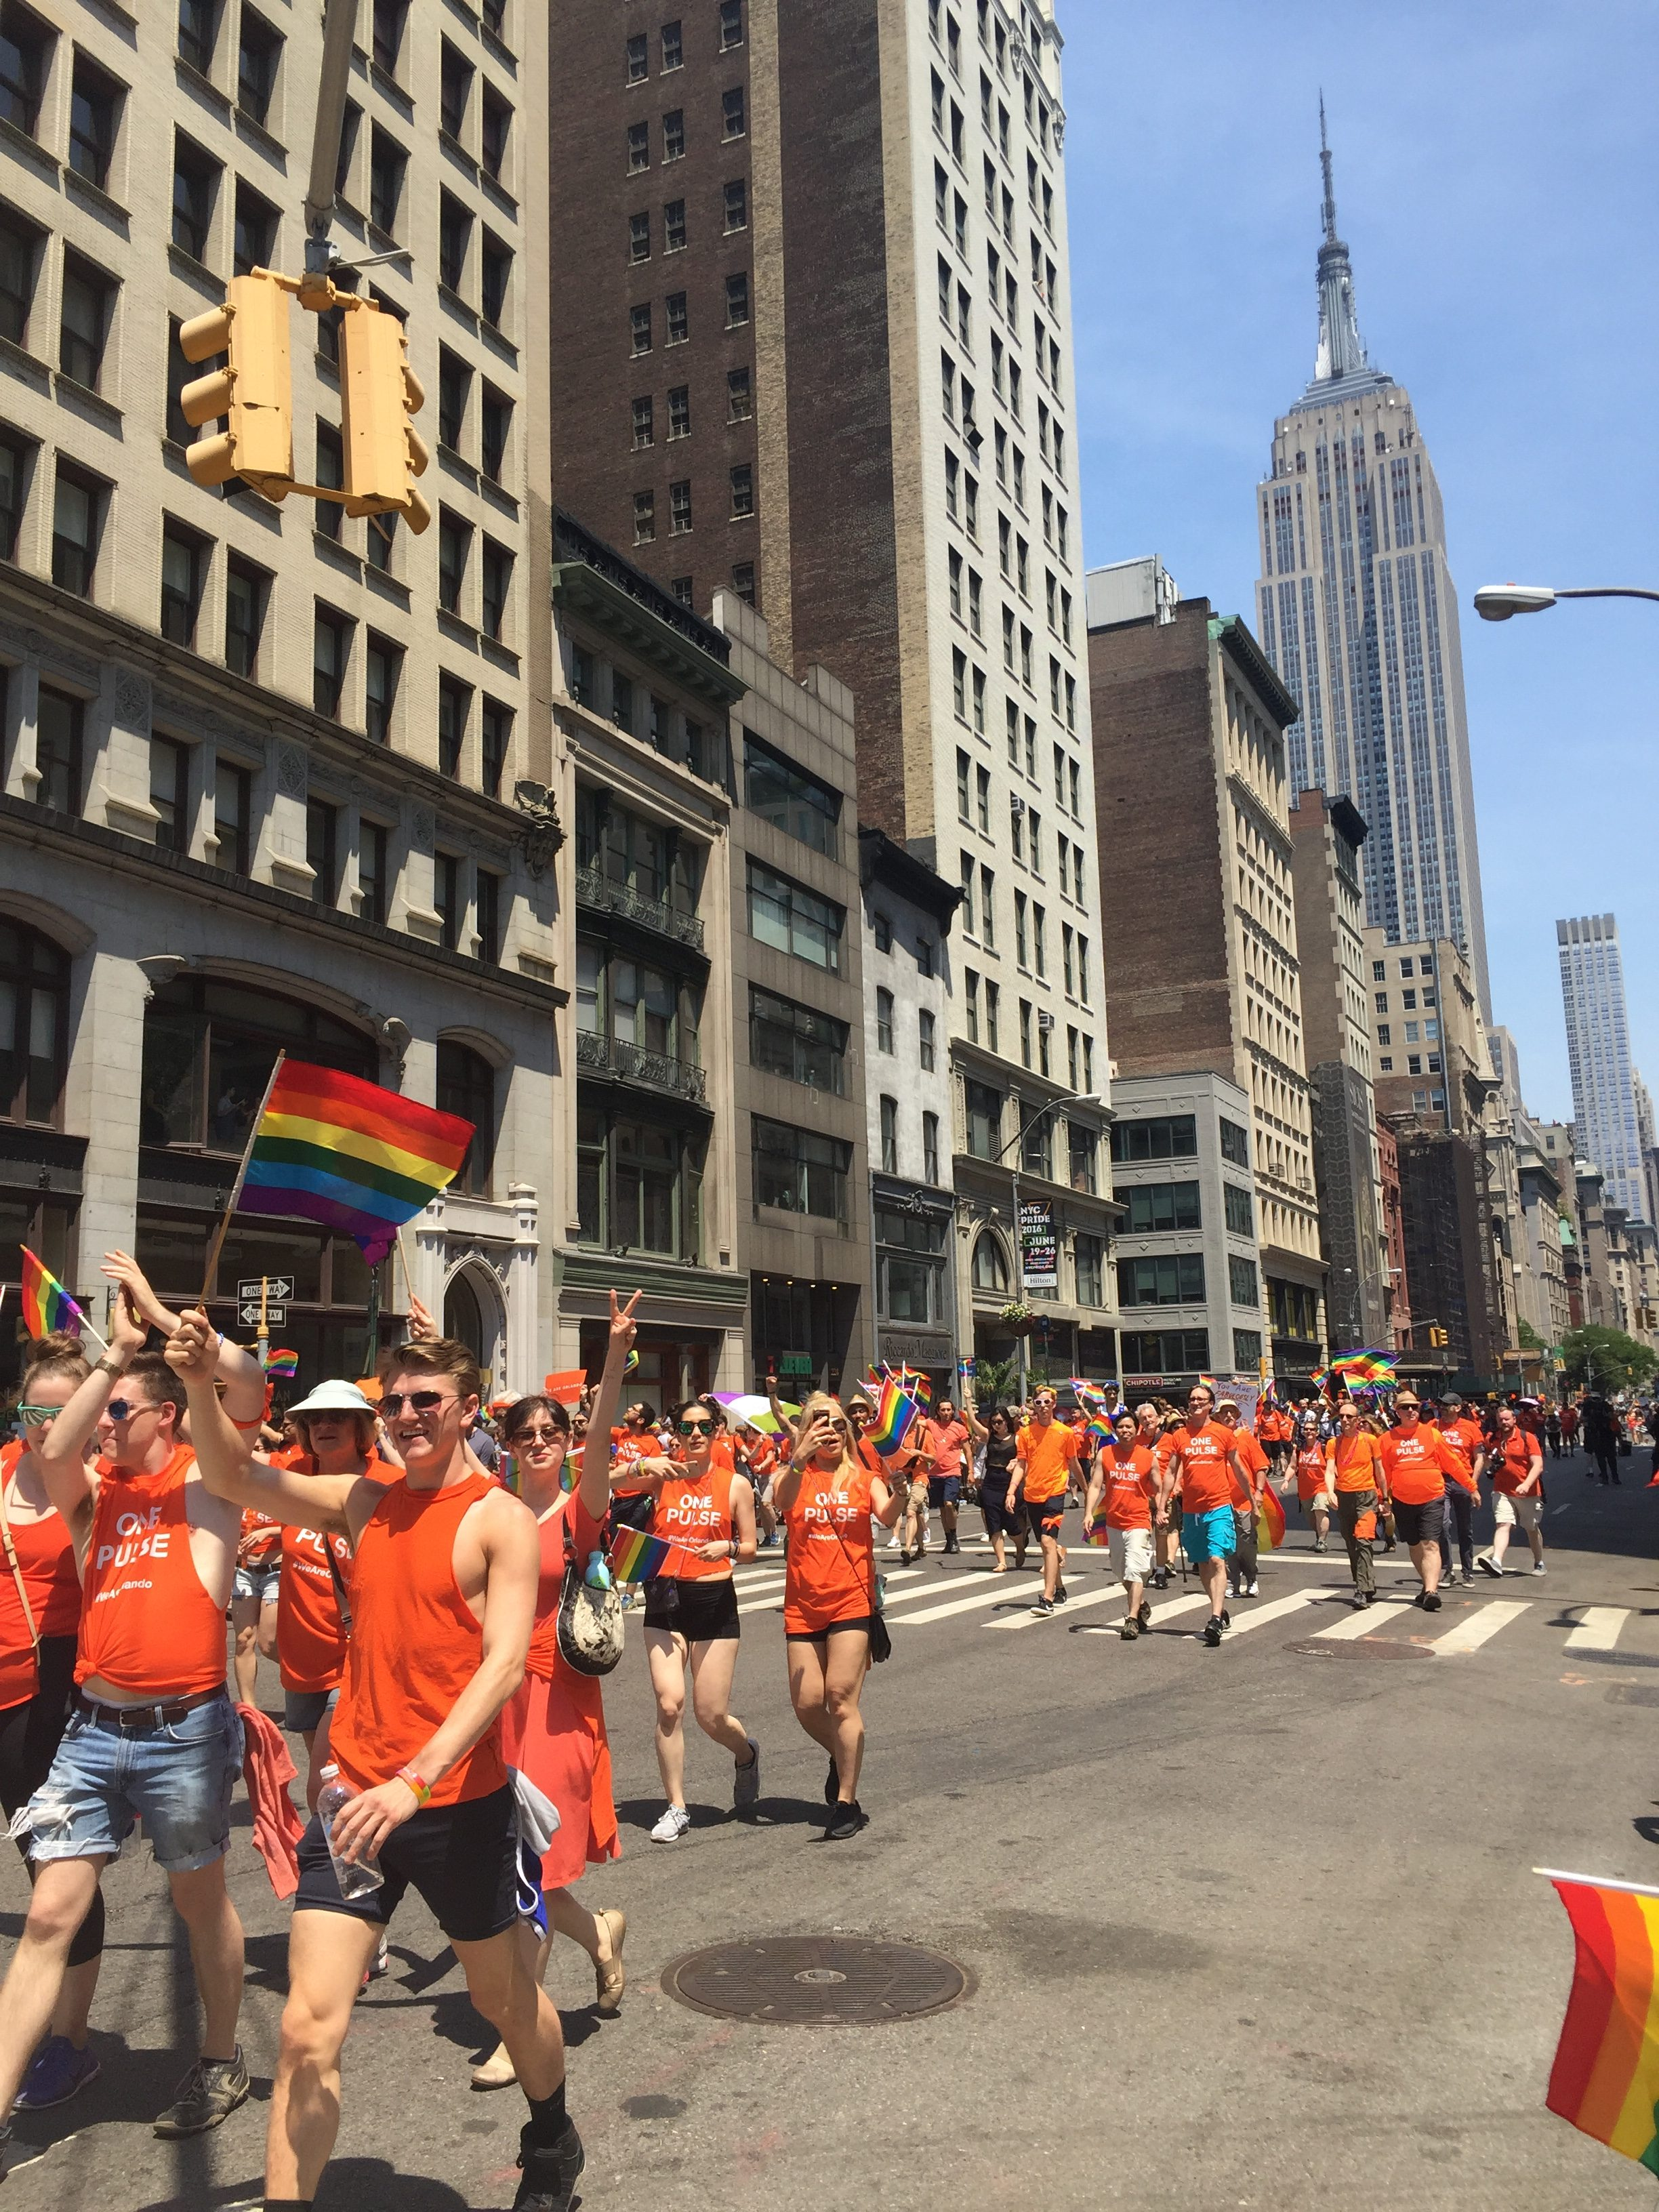 Marchers paid tribute to the 49 clubgoers killed at Pulse Nightclub at the Pride March in New York on Sunday, June 26. Photo by Omar Etman/PBS NewsHour Weekend